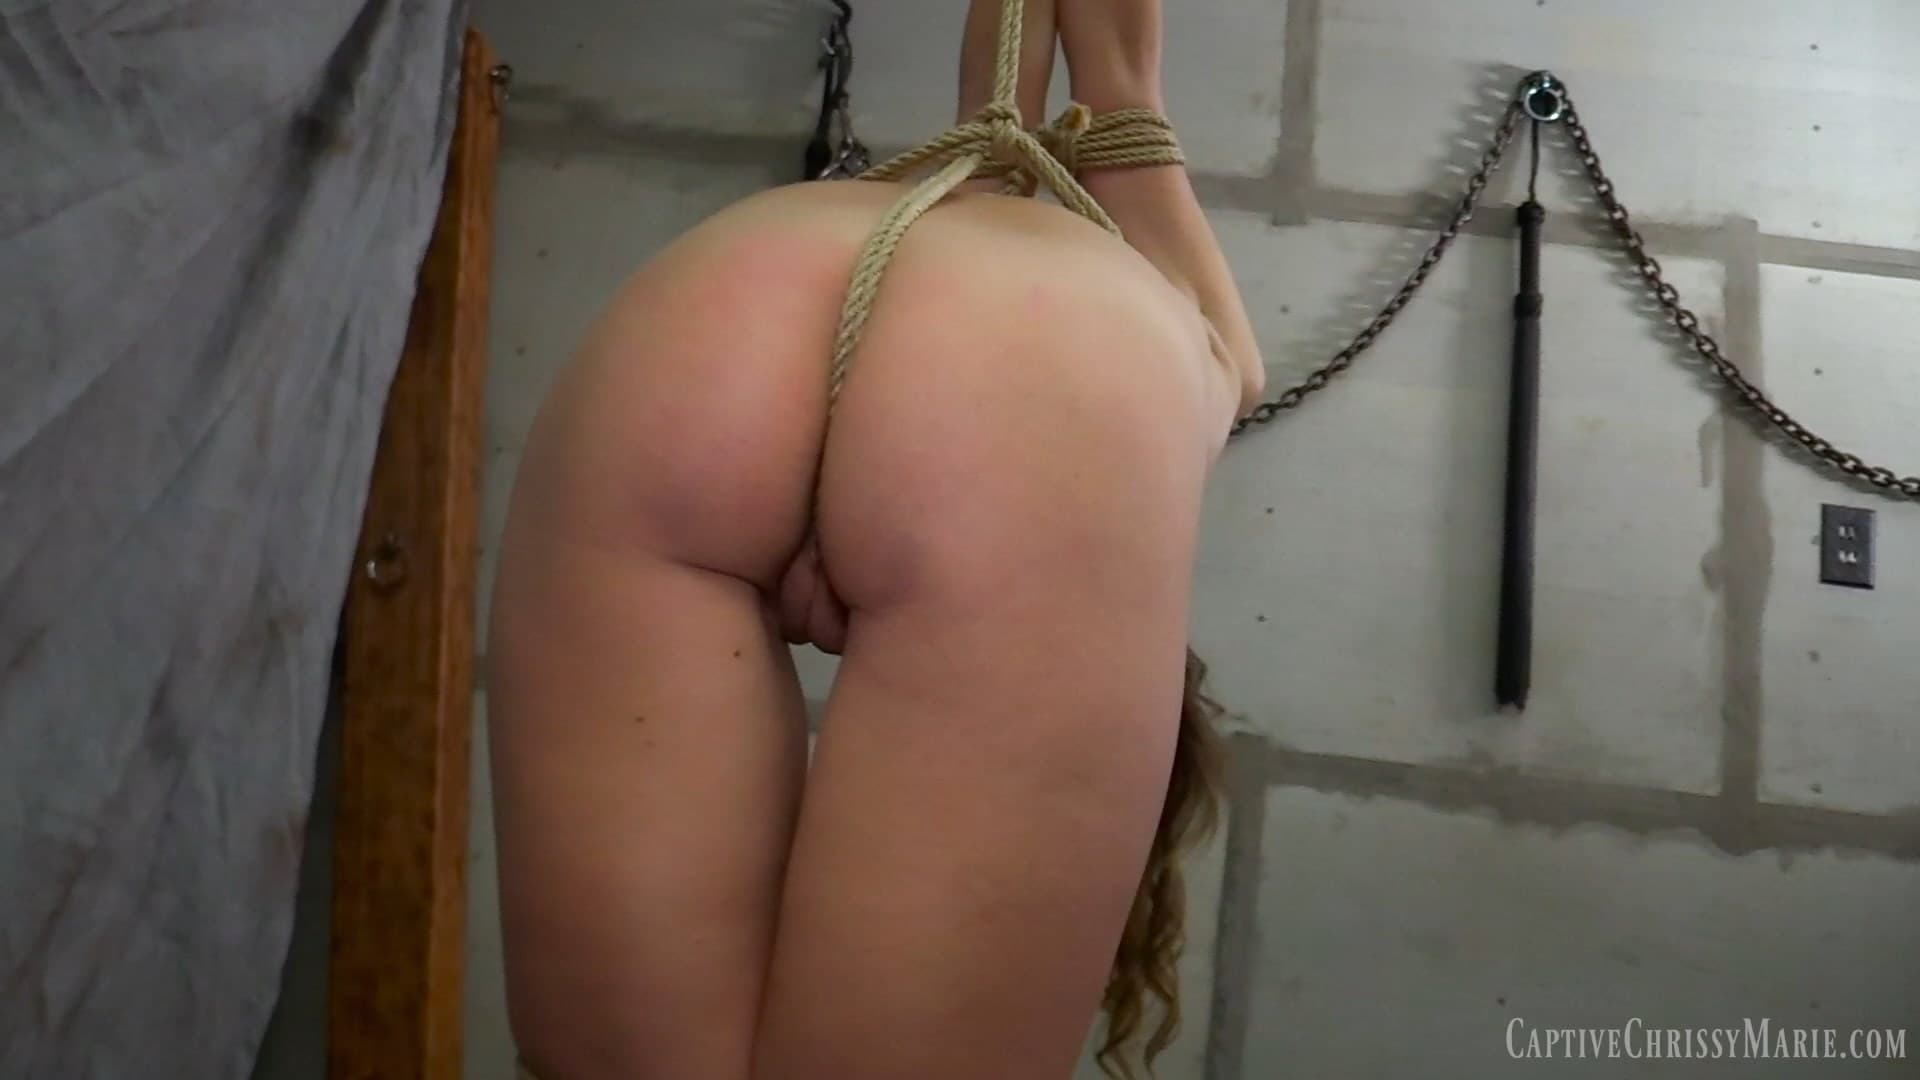 Captive Chrissy Marie – MP4/HD – Chrissy Marie – Strict Strappado Predicament